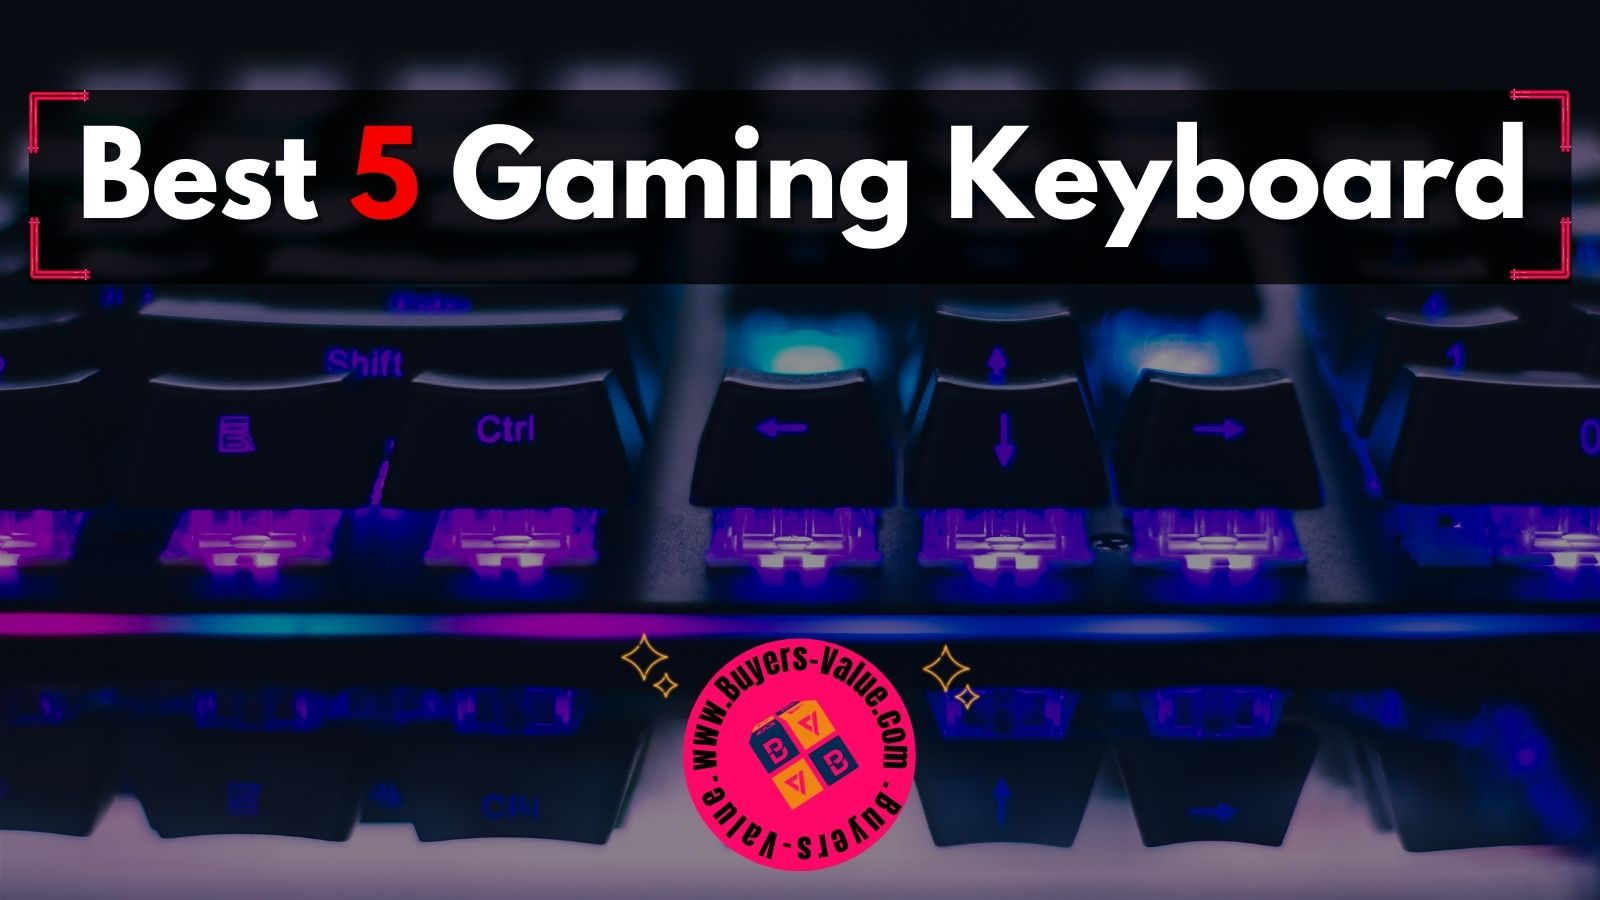 Best Gaming Keyboards For Gamers